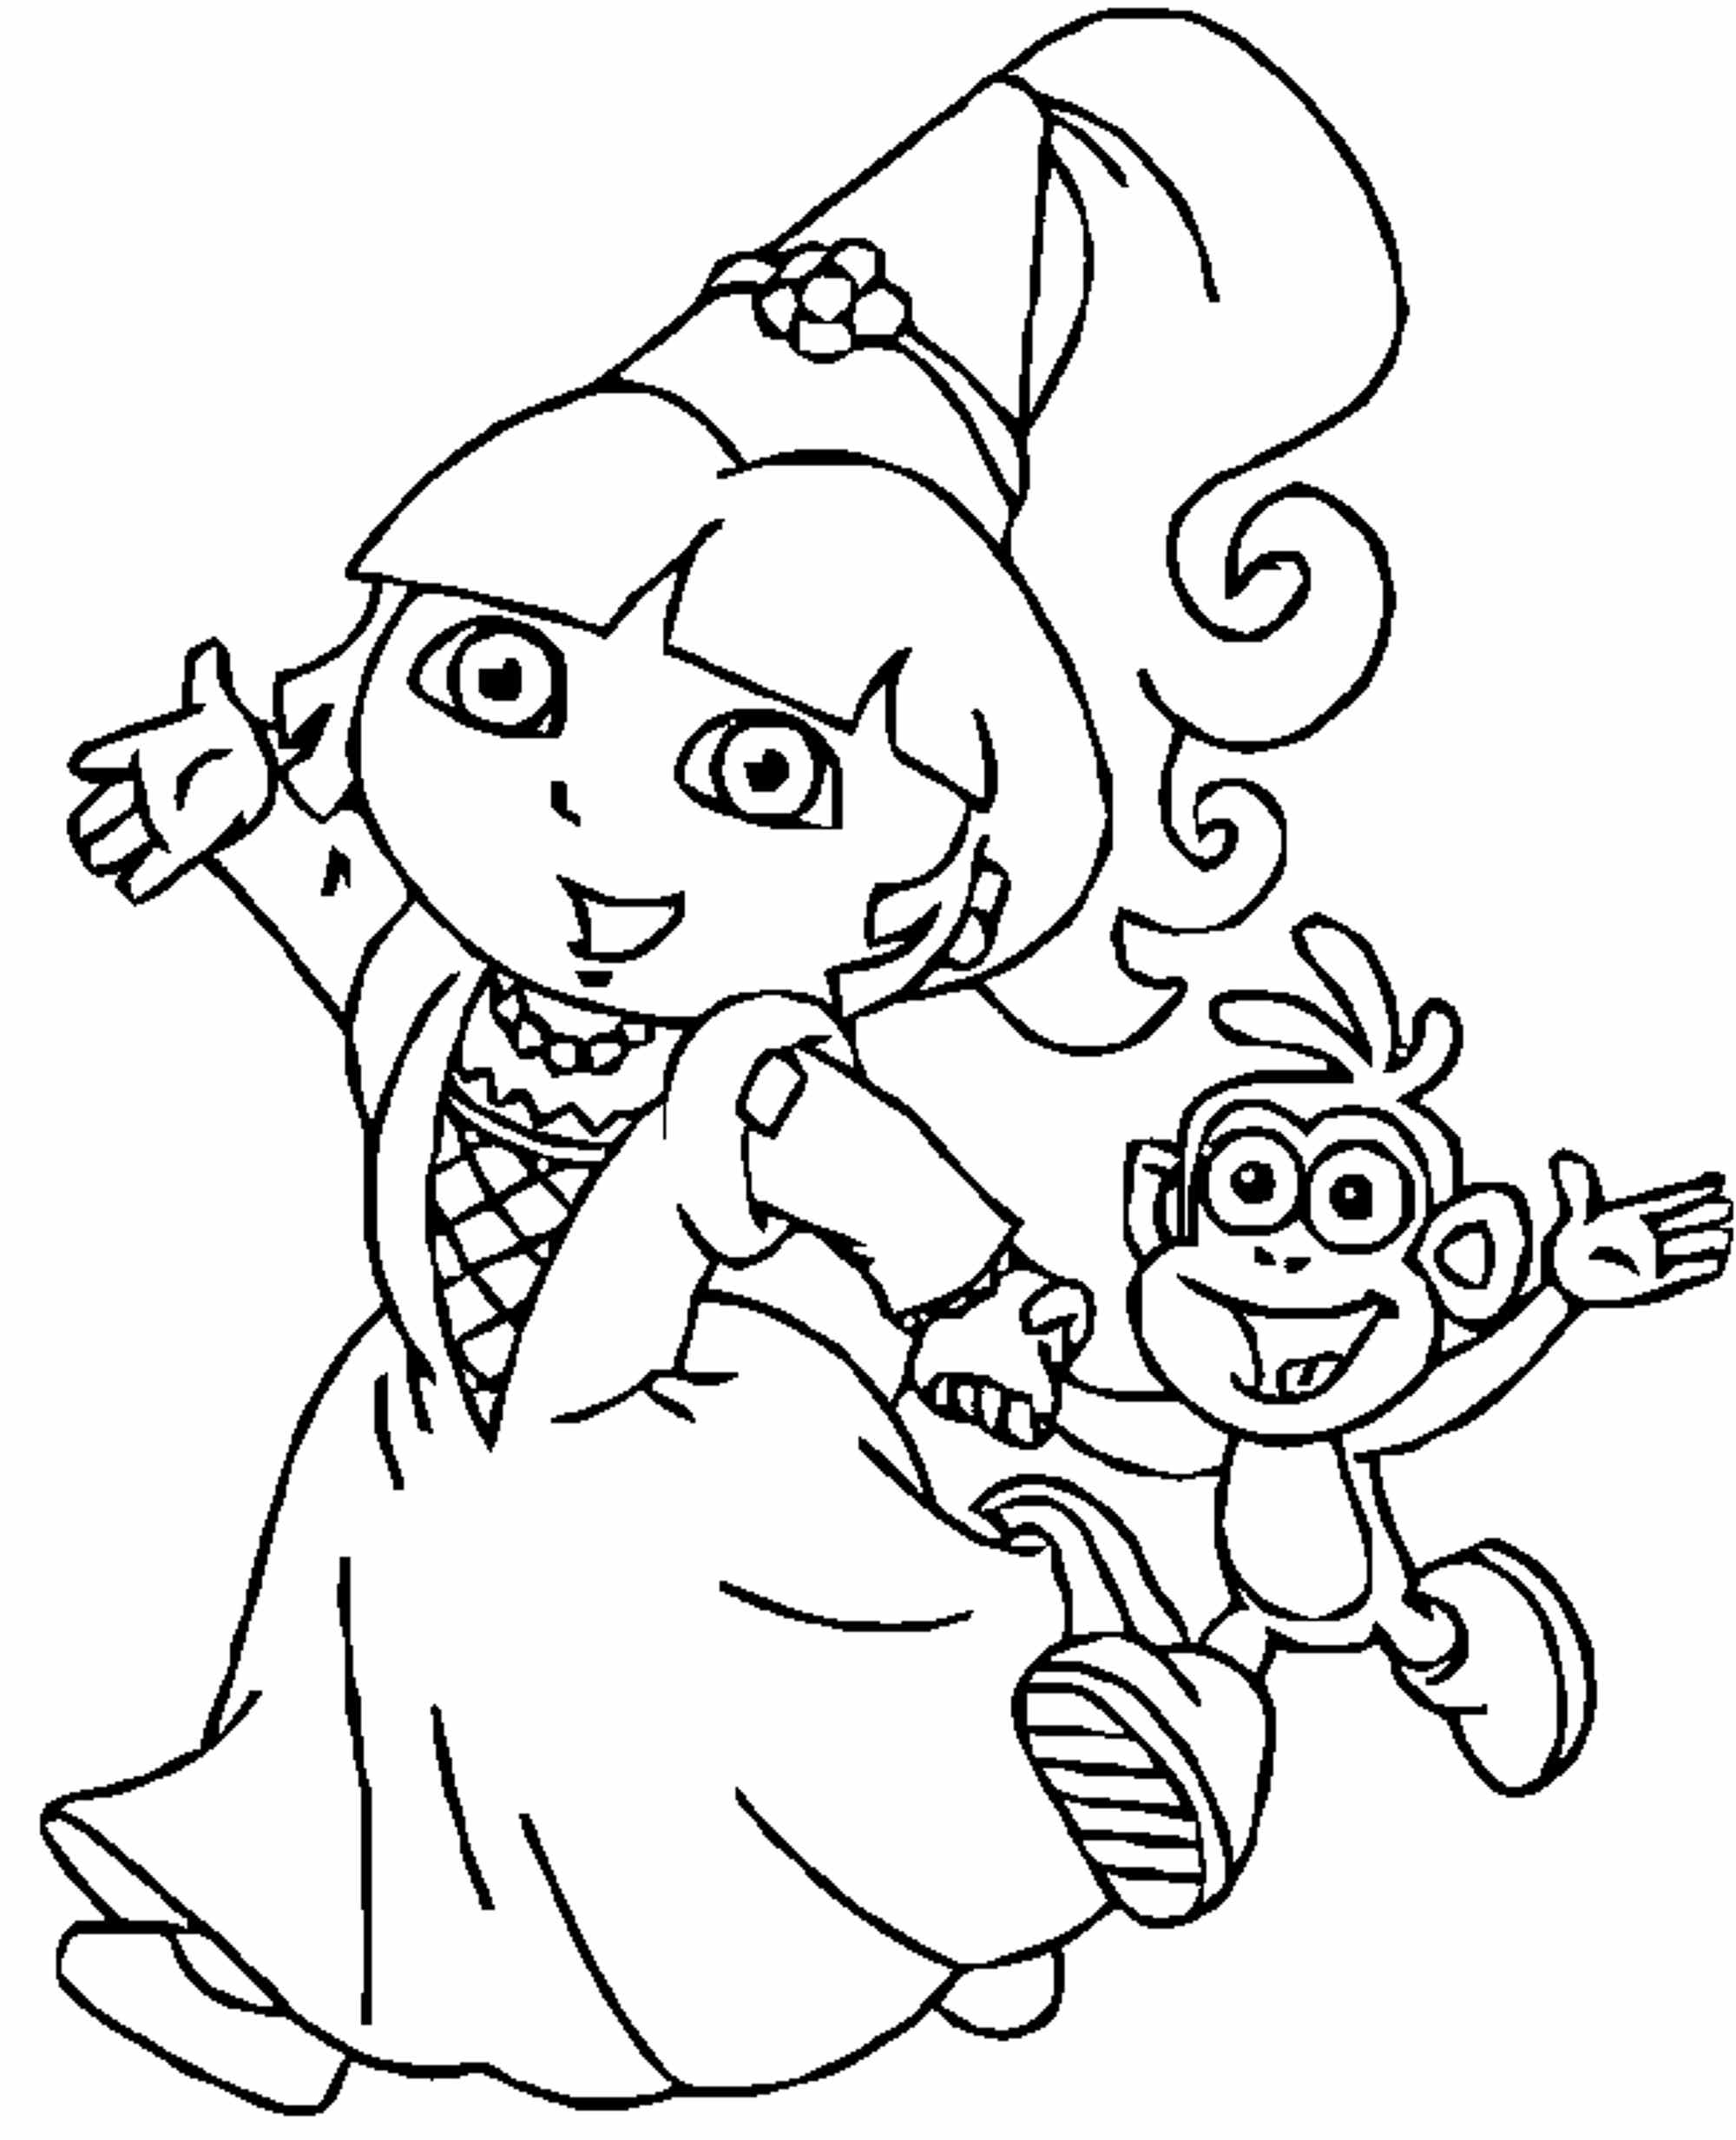 coloring pages with dora - photo#27